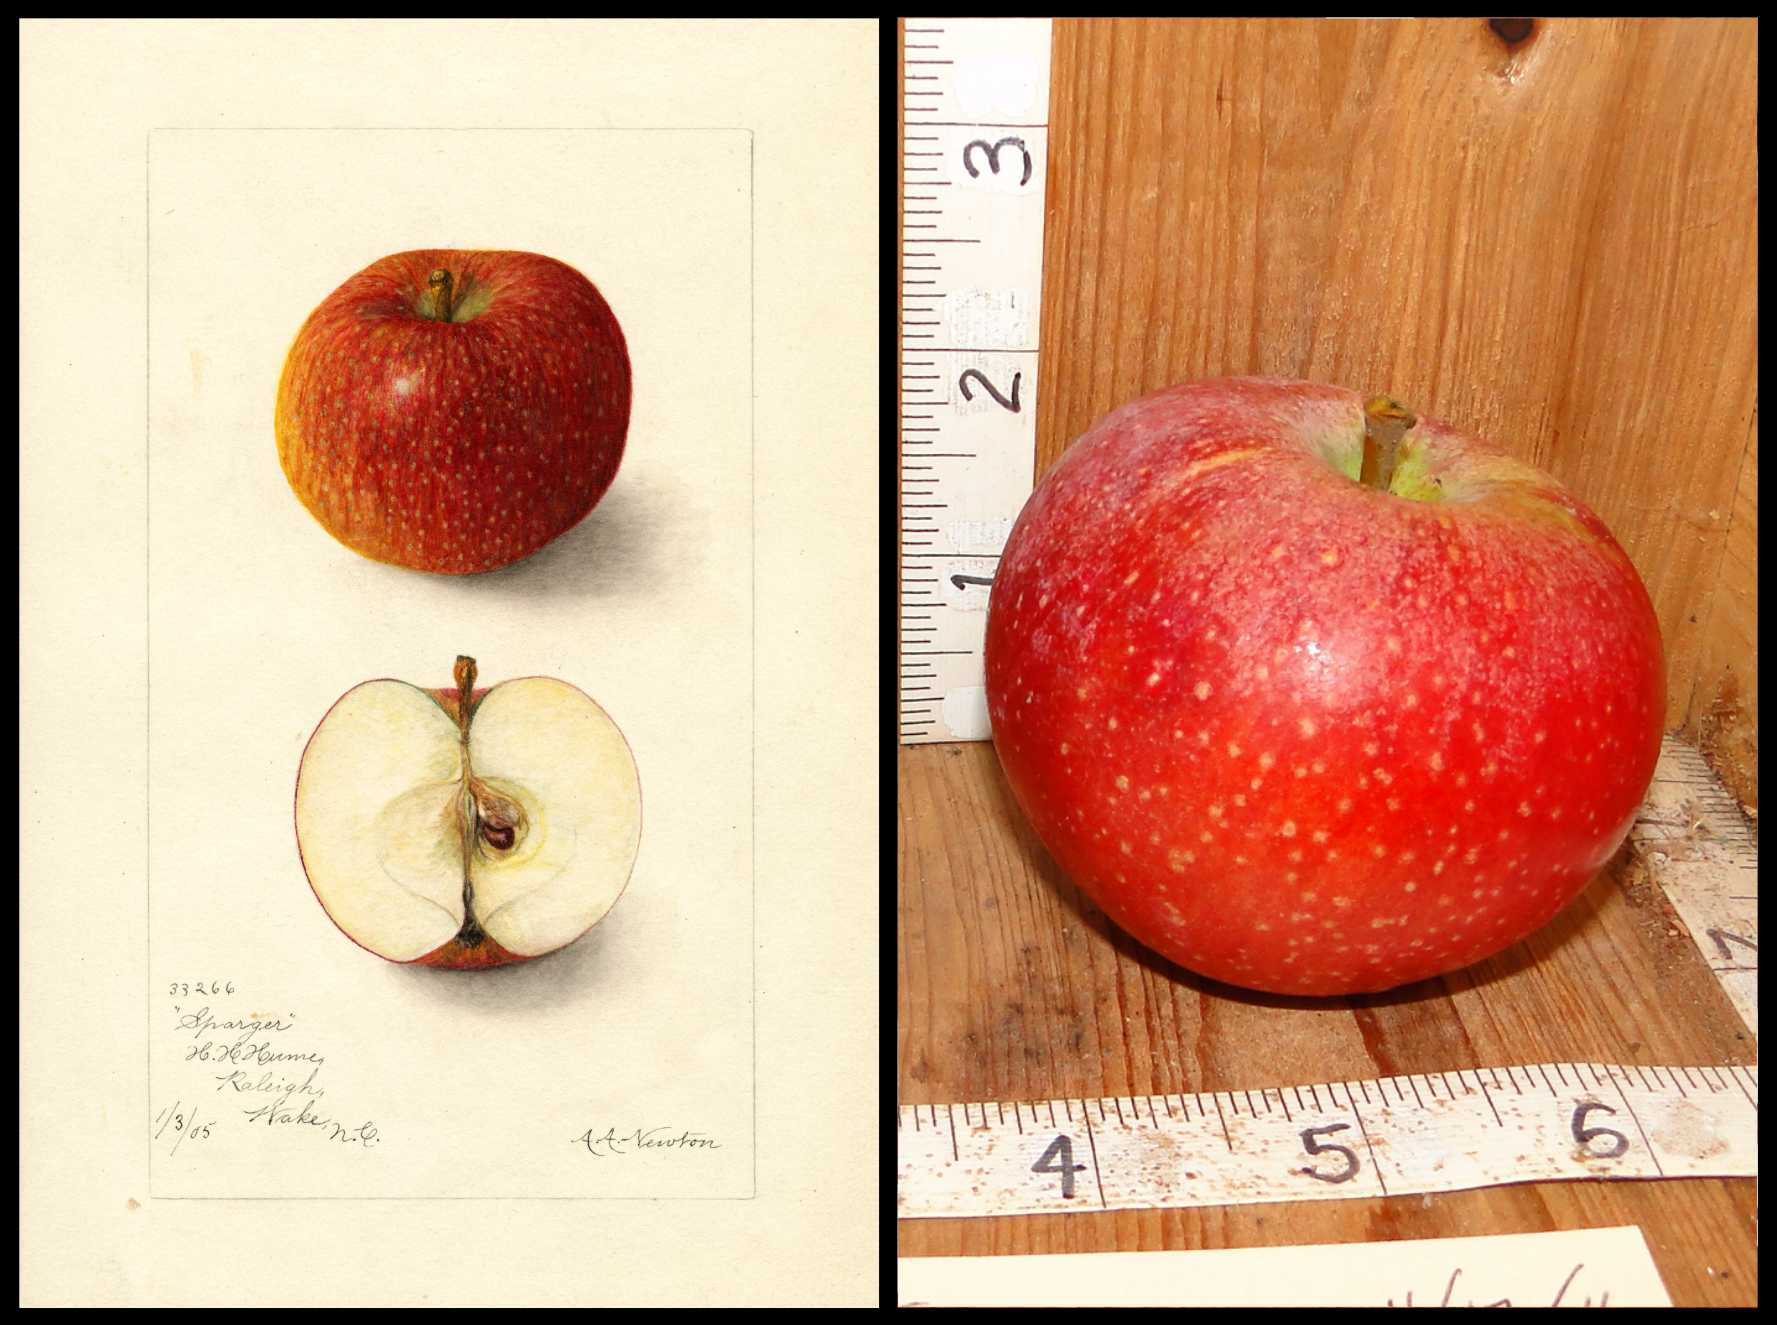 red apple with medium sized white spots